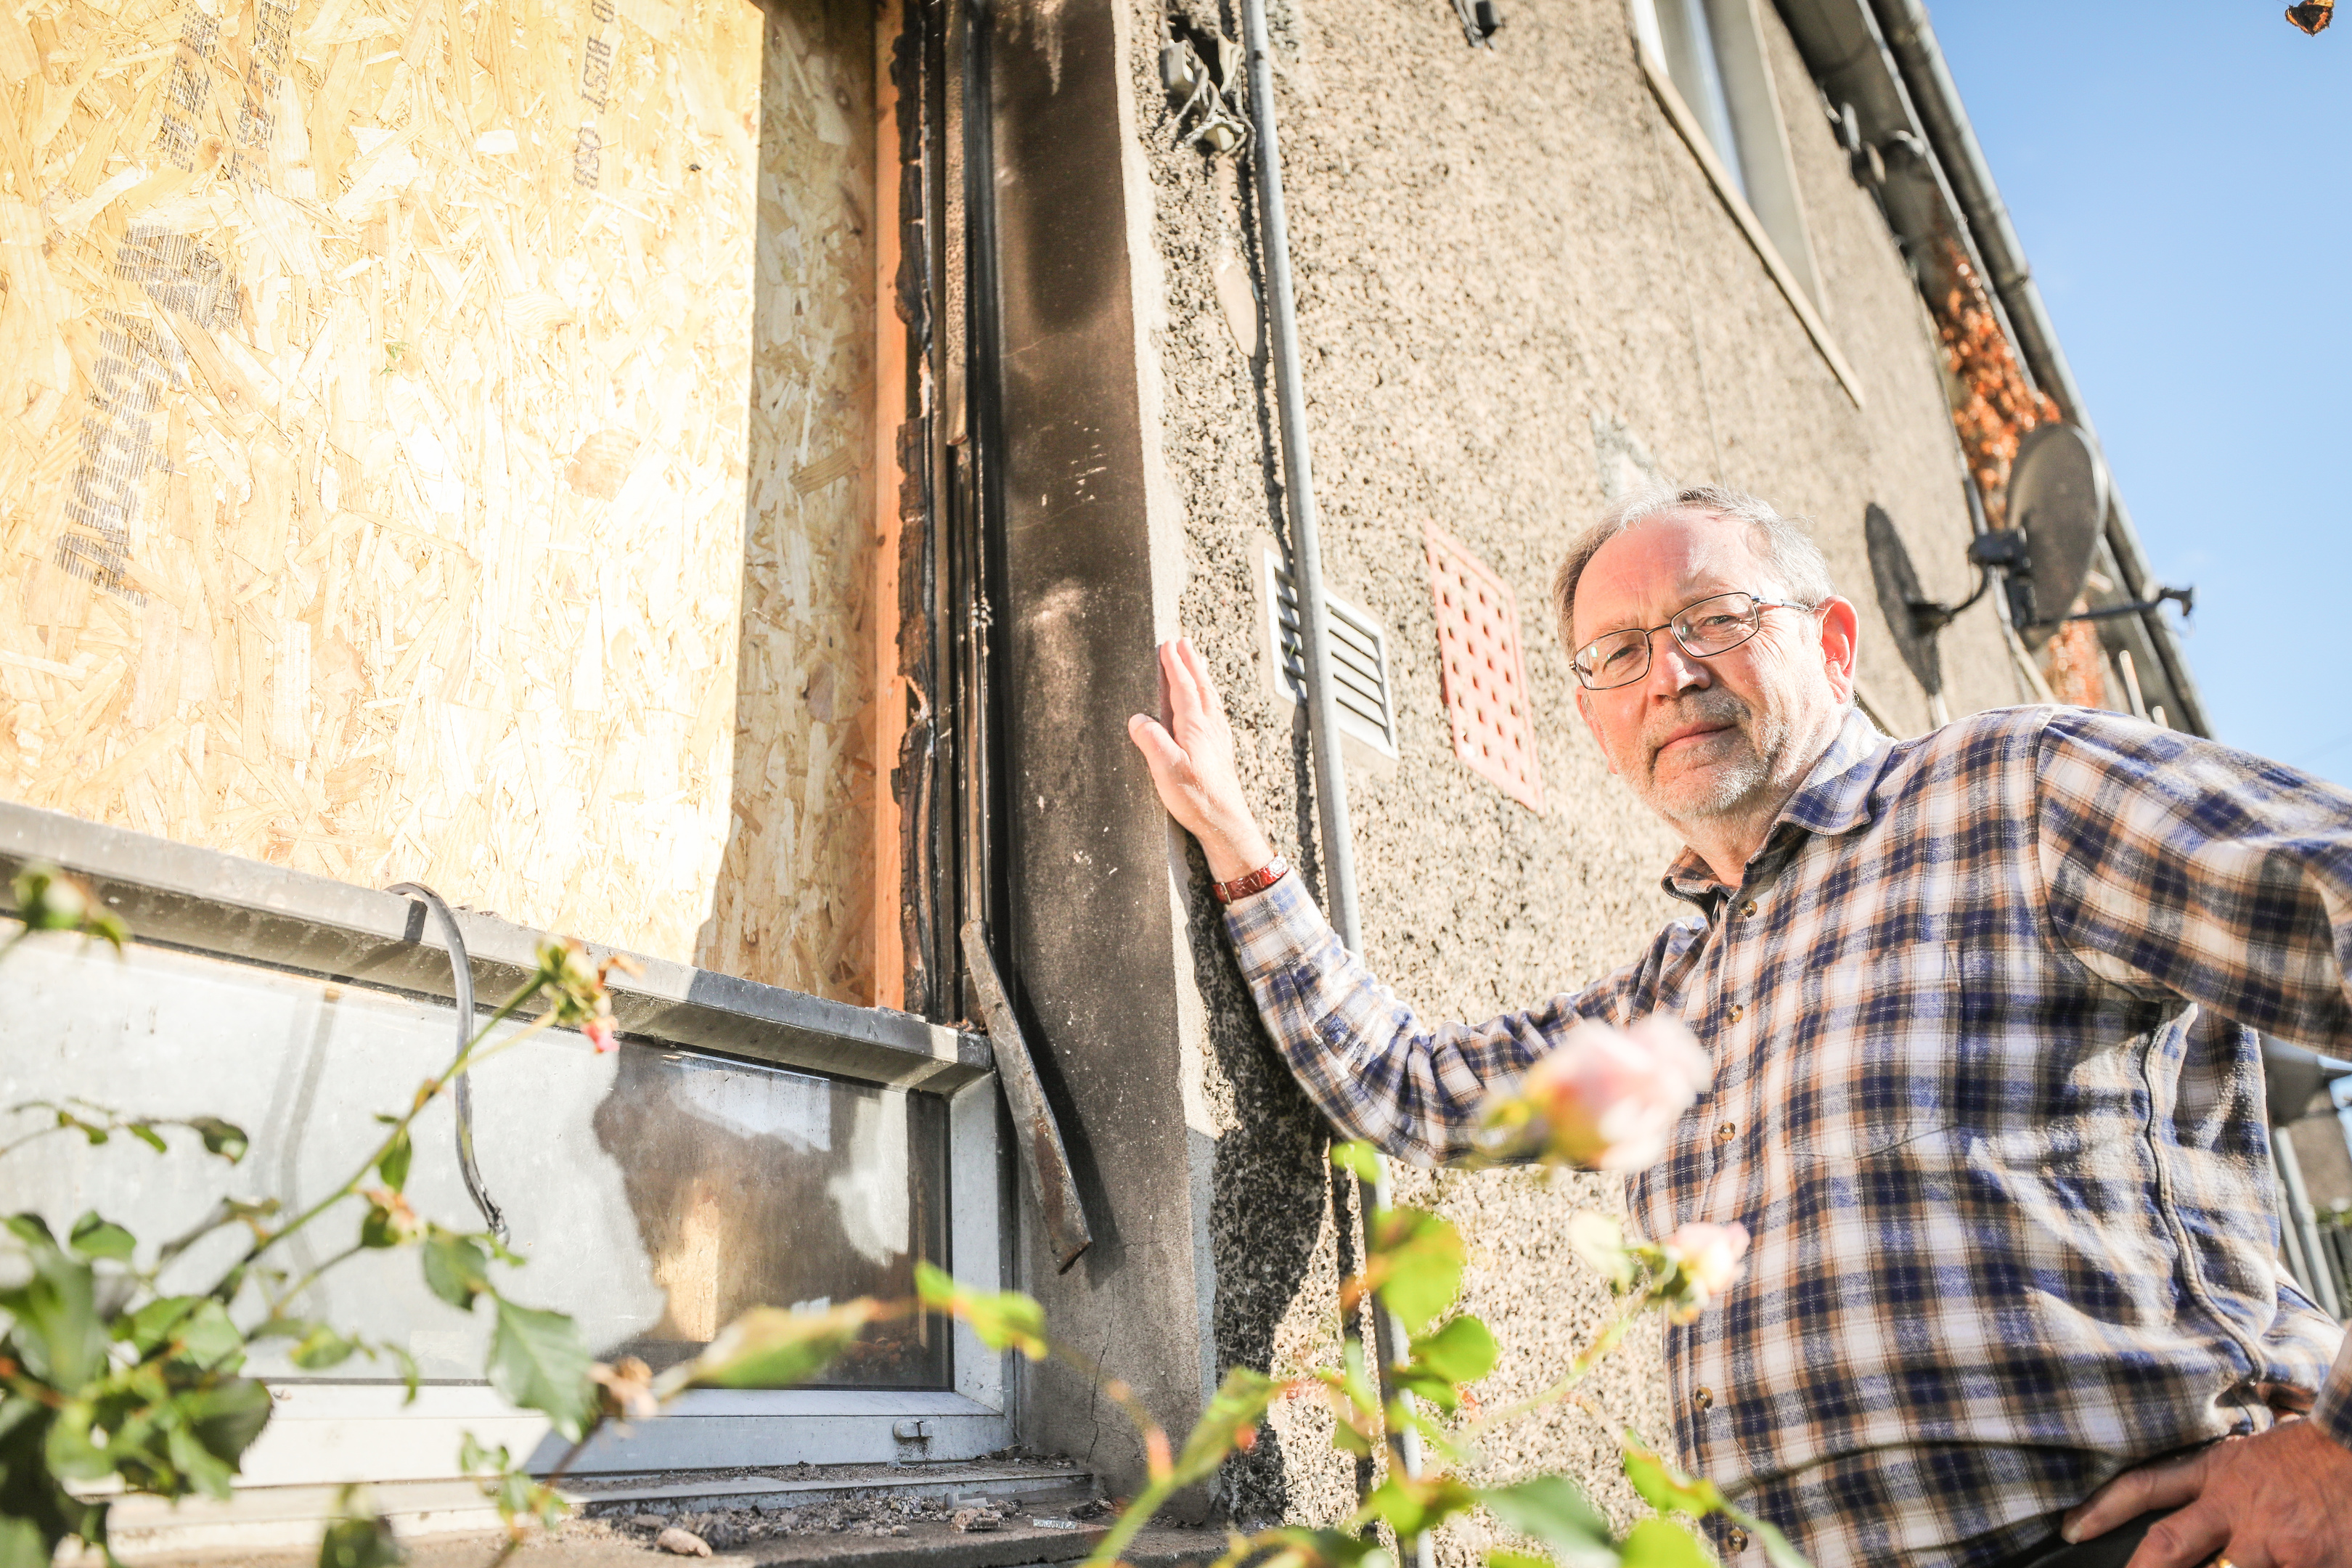 Cllr Tim Brett said the delay in repairing the fire-damaged flat was unacceptable